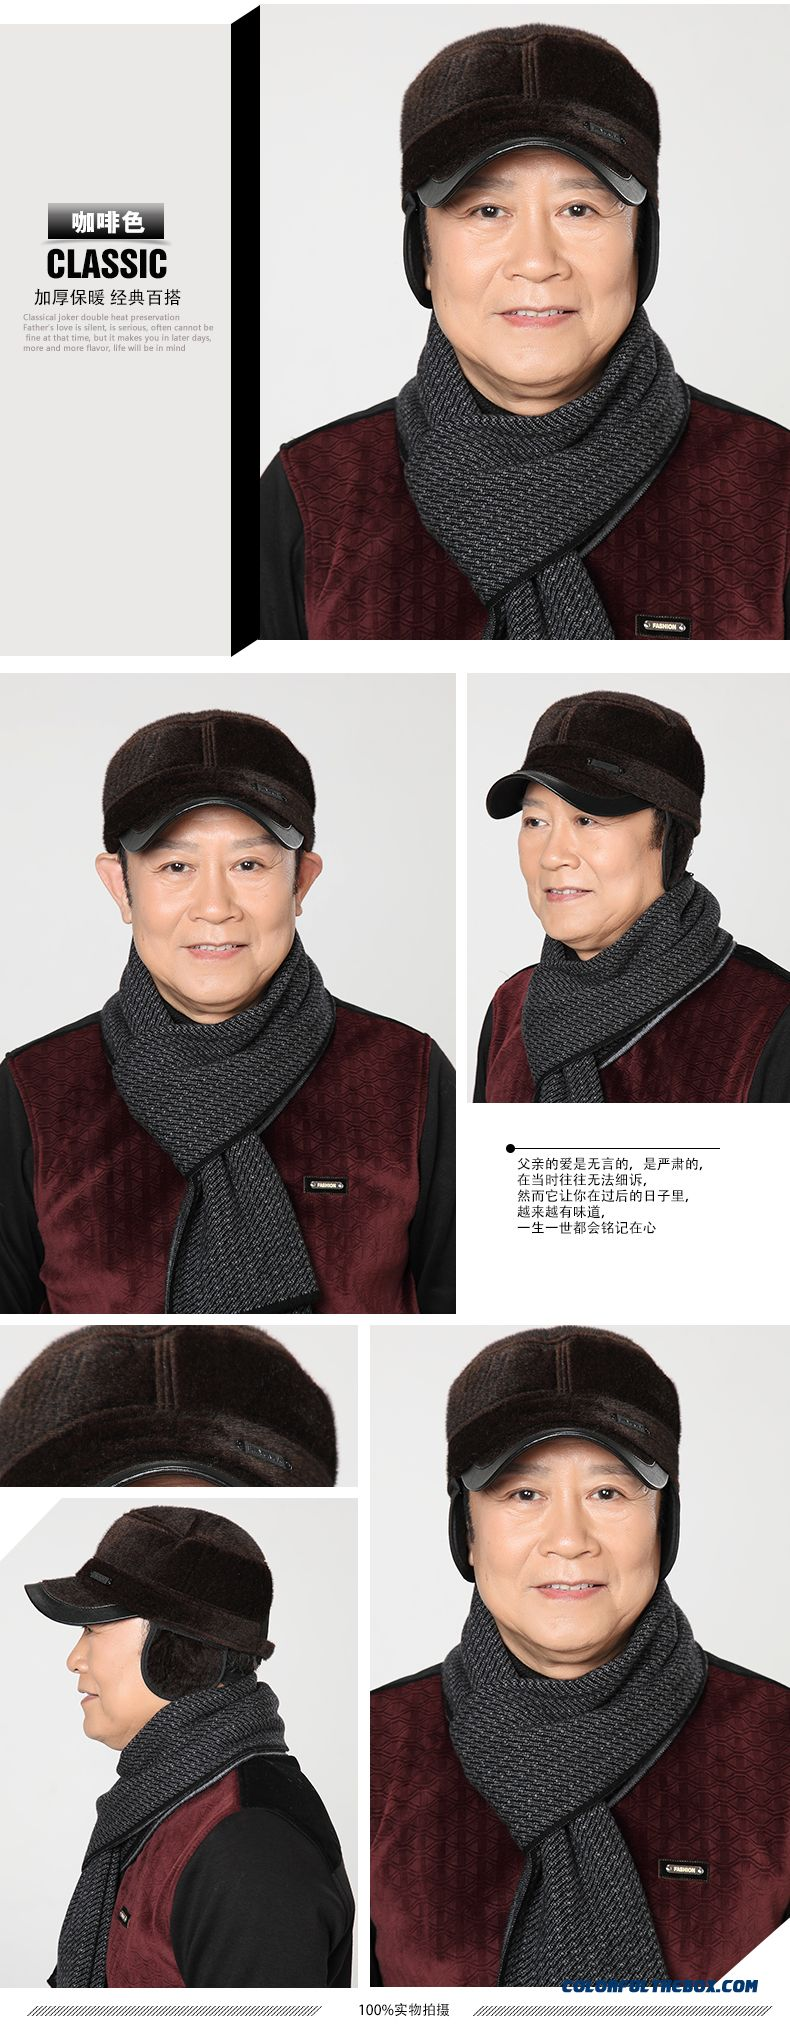 ca16d568eb7a3 ... Middle-aged Men s Winter Hats Short-brimmed Hat Woolen Flat Cap Winter  Warm Accessories